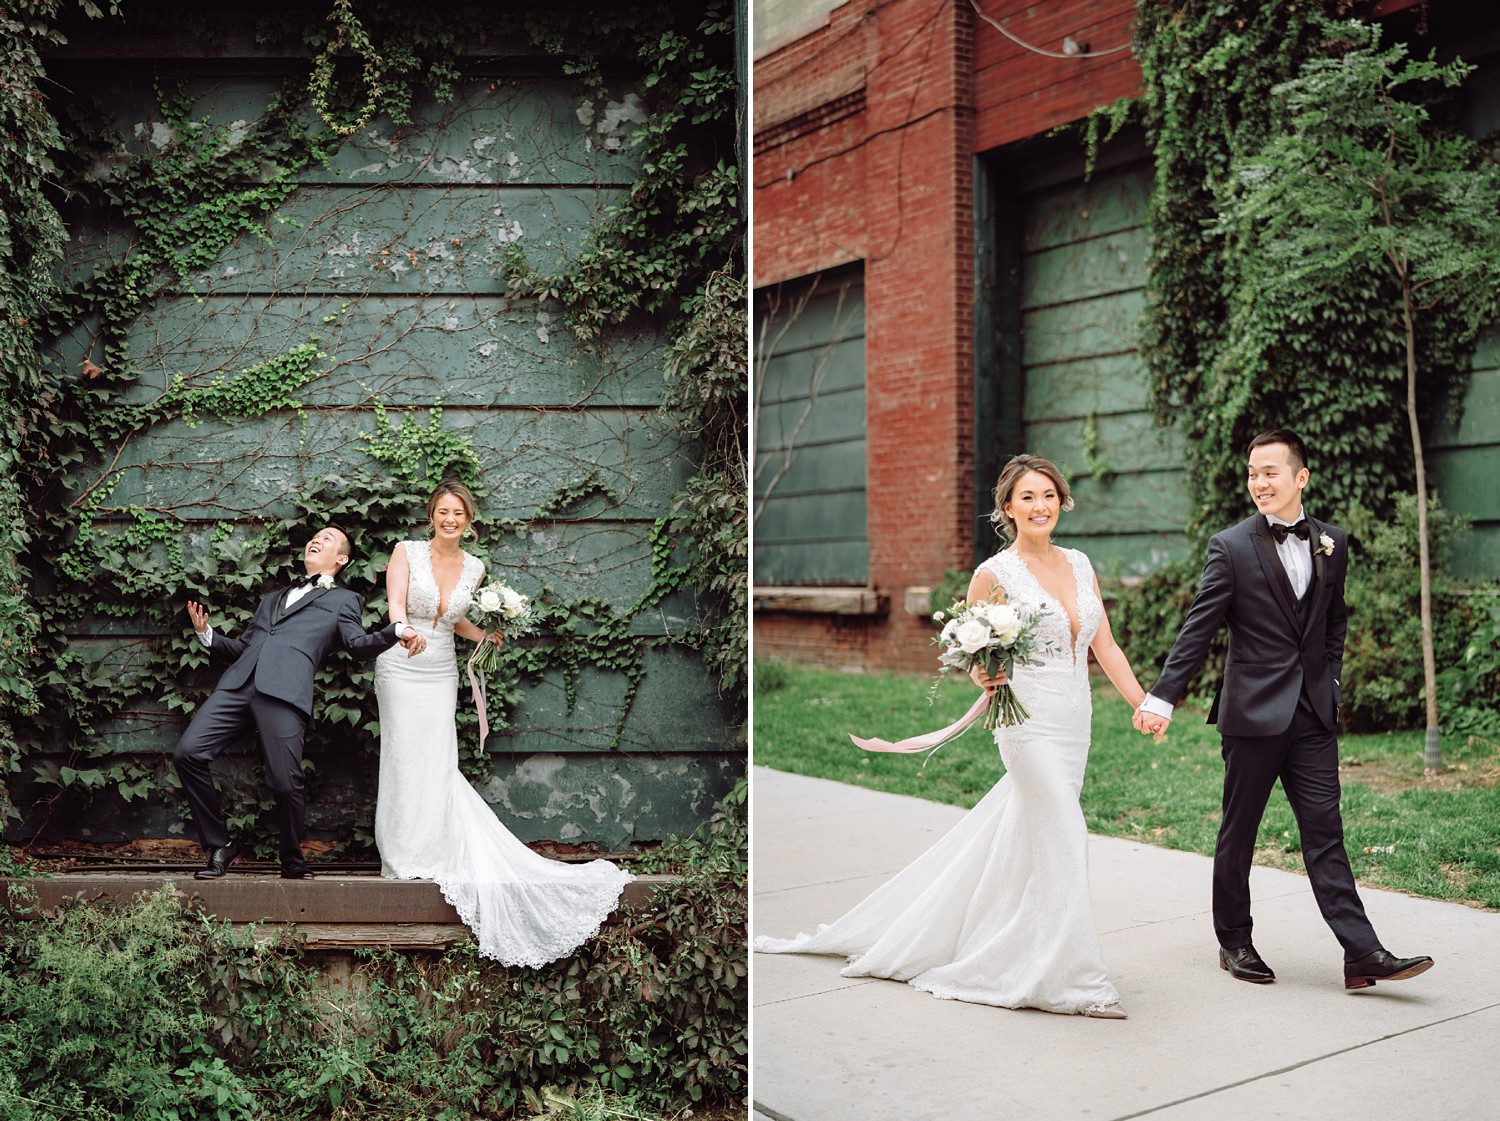 Hong_Kong_Couple_Archeo_Distillery_District_Wedding_Photos_Toronto_Destination_Wedding_Photographer-Rhythm_Photography